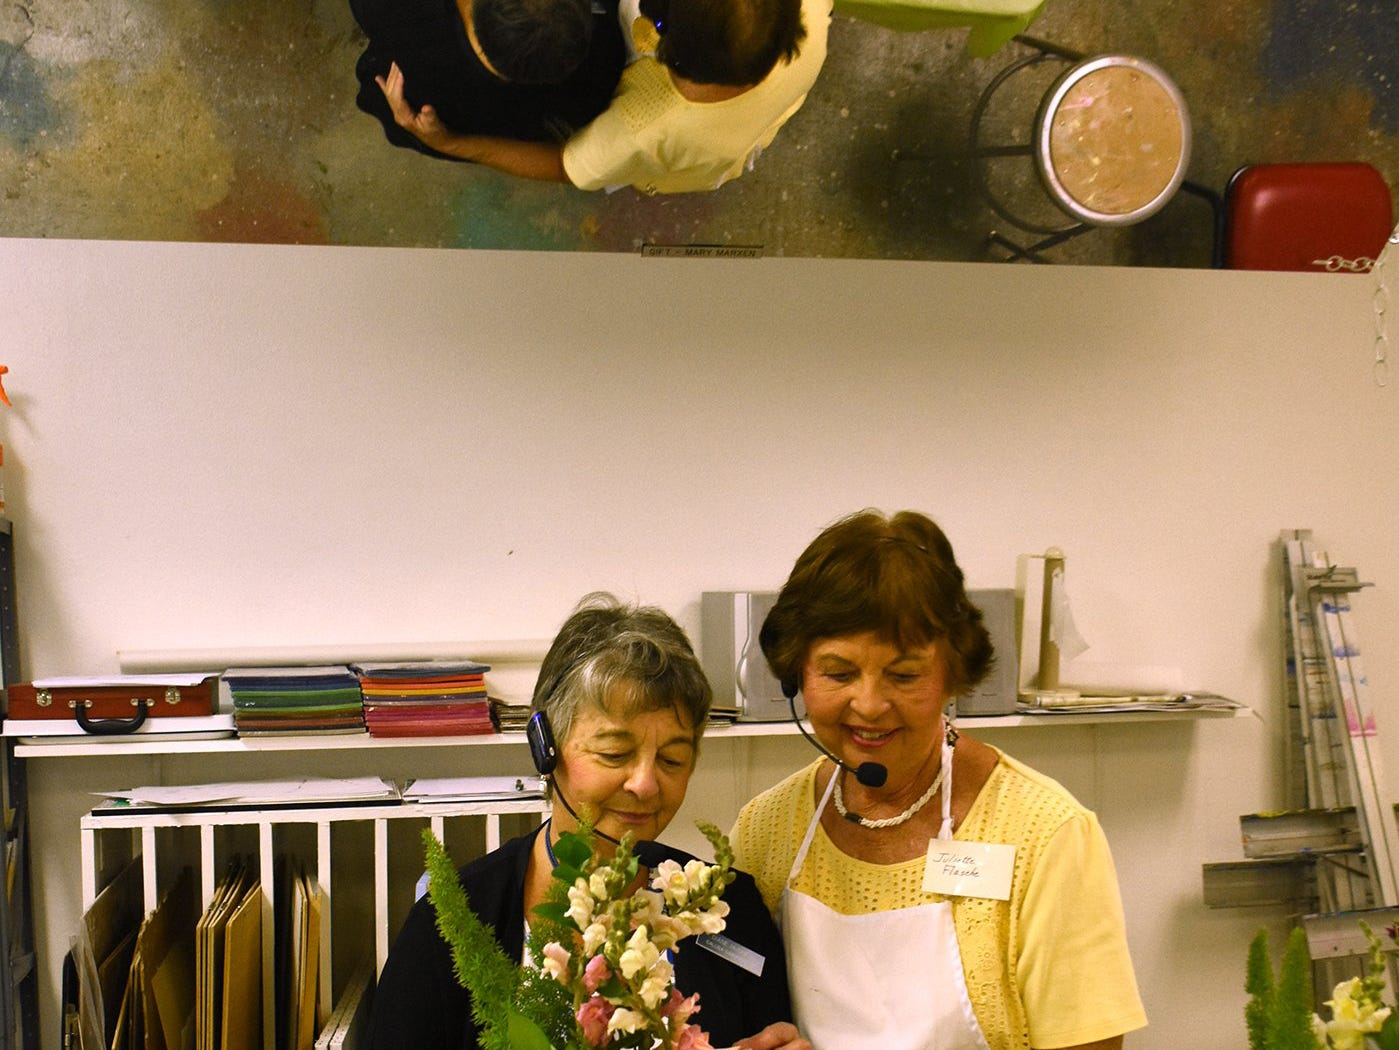 Diane Hughes, left, and Juliette Flasche lead a class on creating flower arrangements. The Calusa Garden Club Gardening Expo at Marco Island Center for the Arts on Saturday displayed beautiful arrangements and showed people how to create their own.